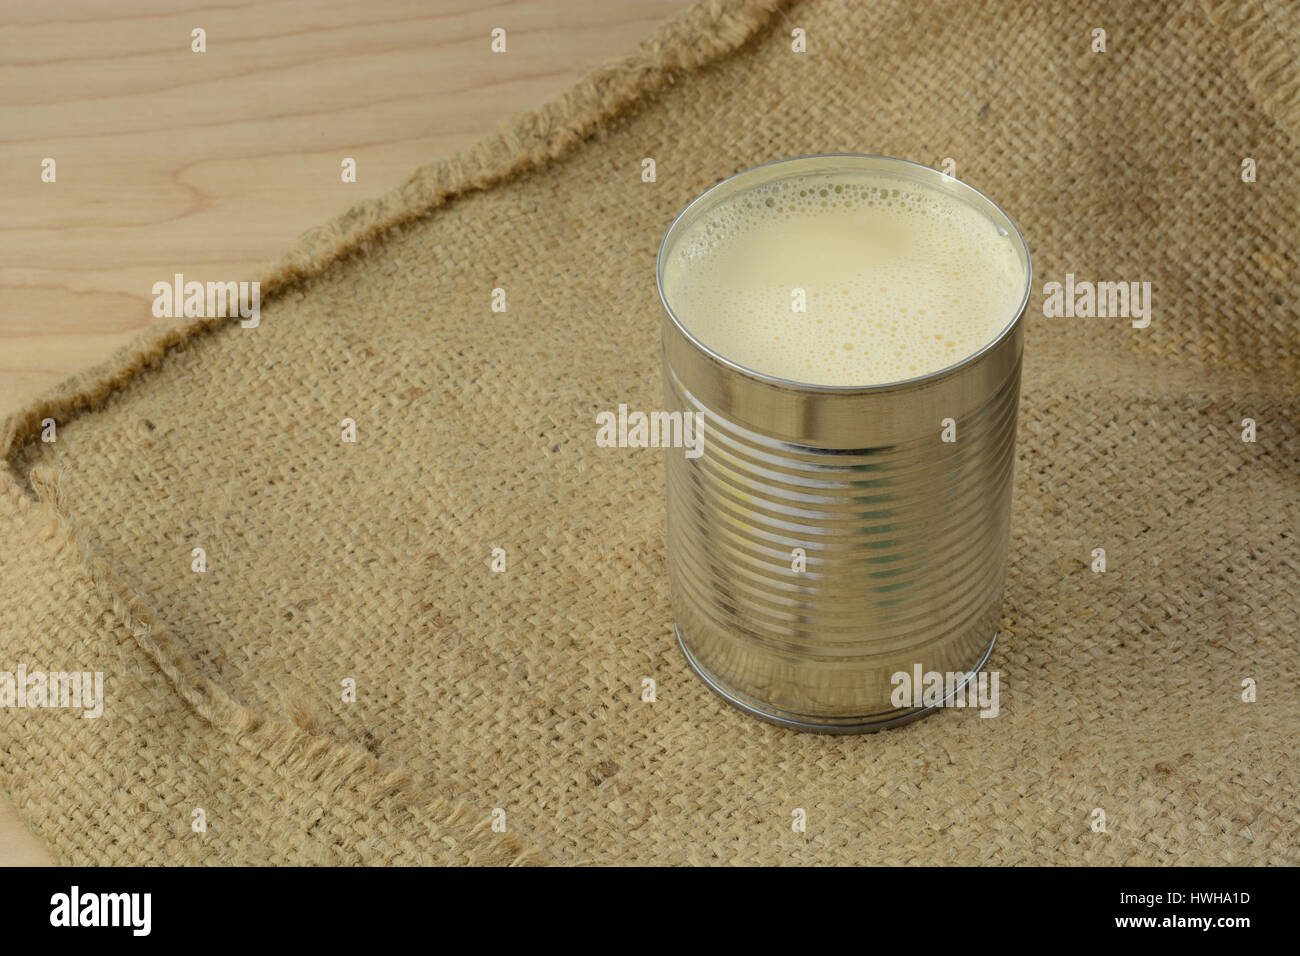 Canned evaporated milk in open can on burlap - Stock Image